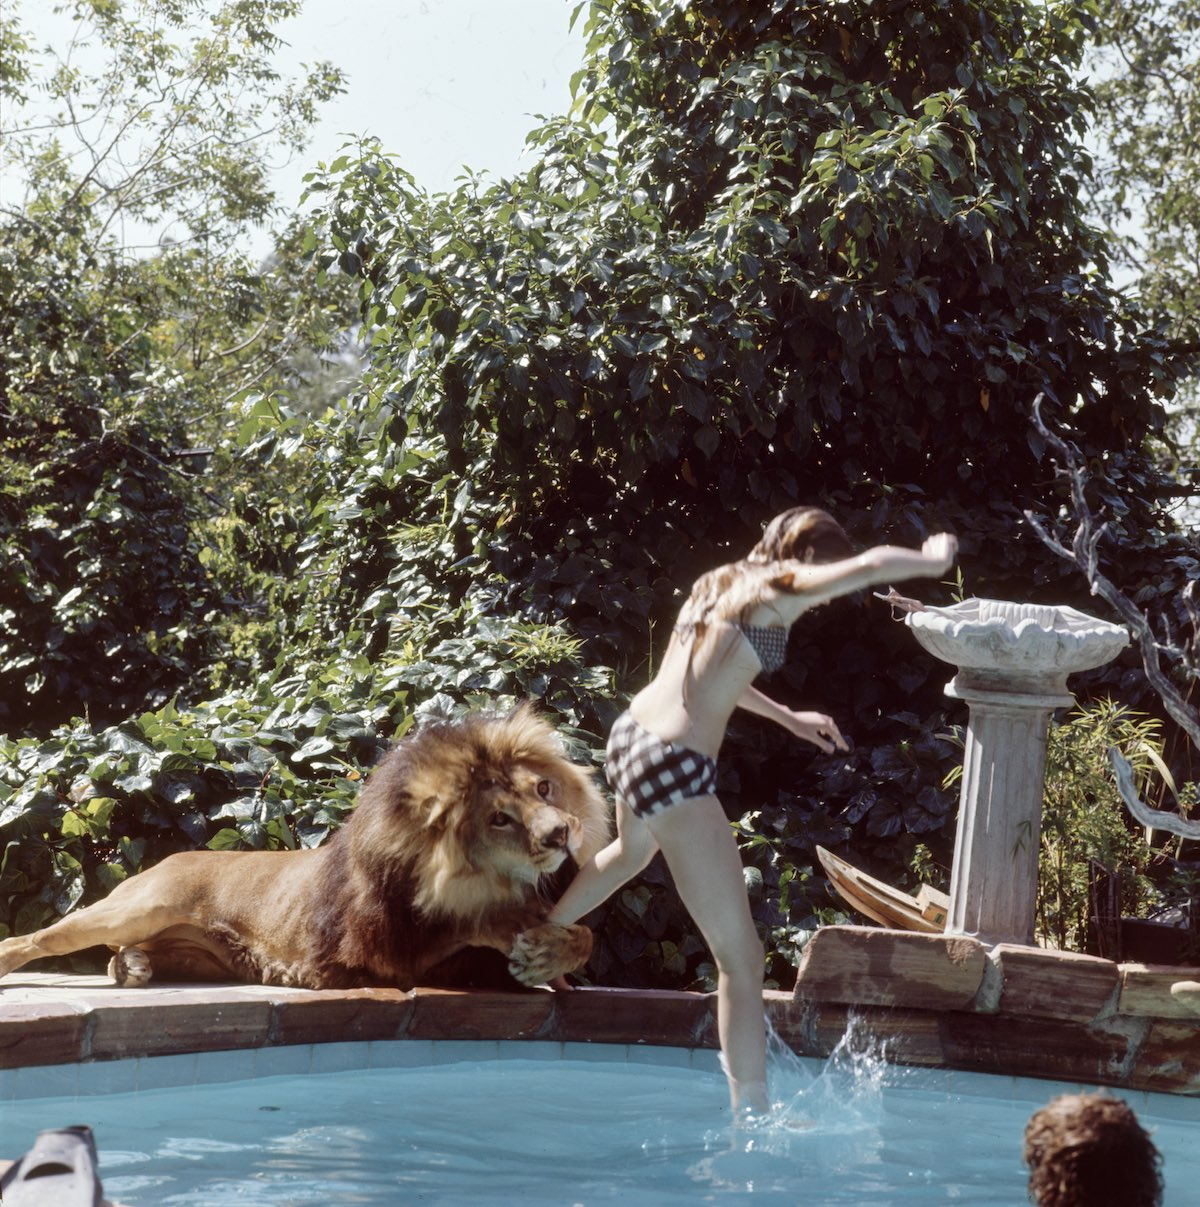 Subject: Melanie Griffith jumping in a swimming pool while pet lion Neil grabs her leg. Sherman Oaks, California May 1971 Photographer- Michael Rougier Time Inc Owned Merlin- 1200564